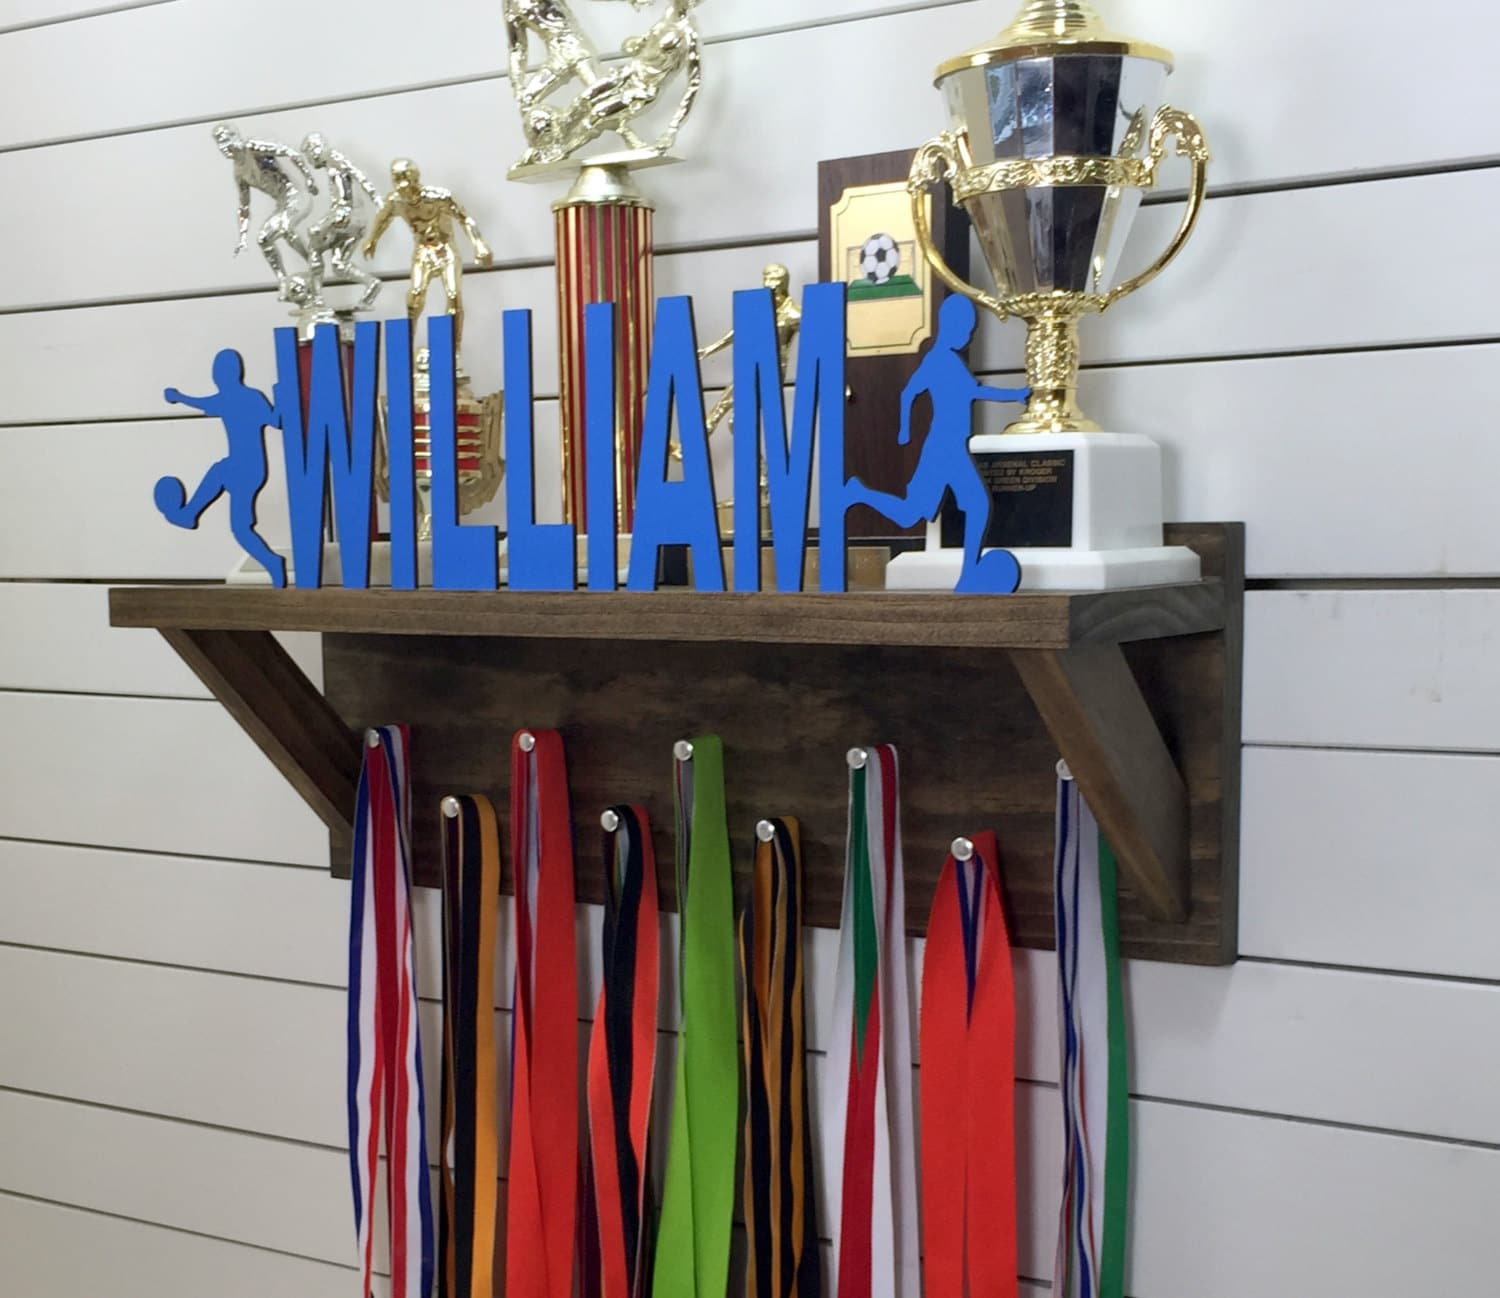 shelf pin accommodates grooved a rack plaque ft has award medal awards black and cased for lanyard foot display shelves trophy